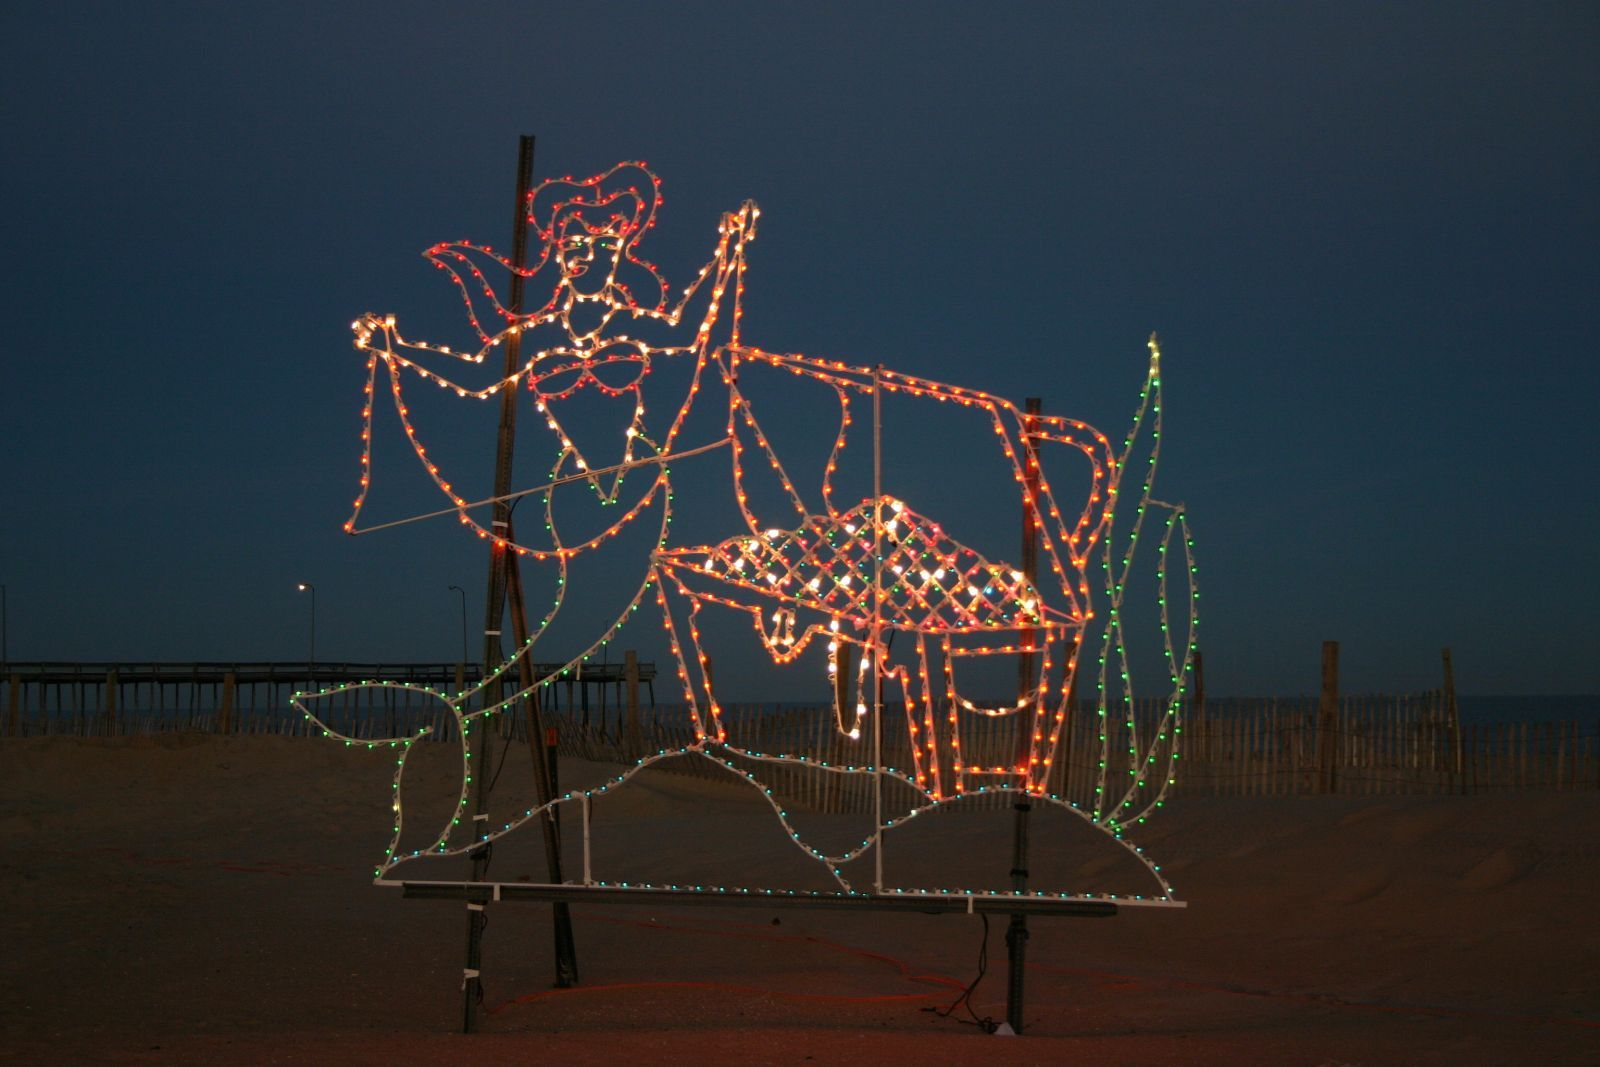 Mermaid Holiday Lights - Ocean City, MD - Winterfest of Lights ...